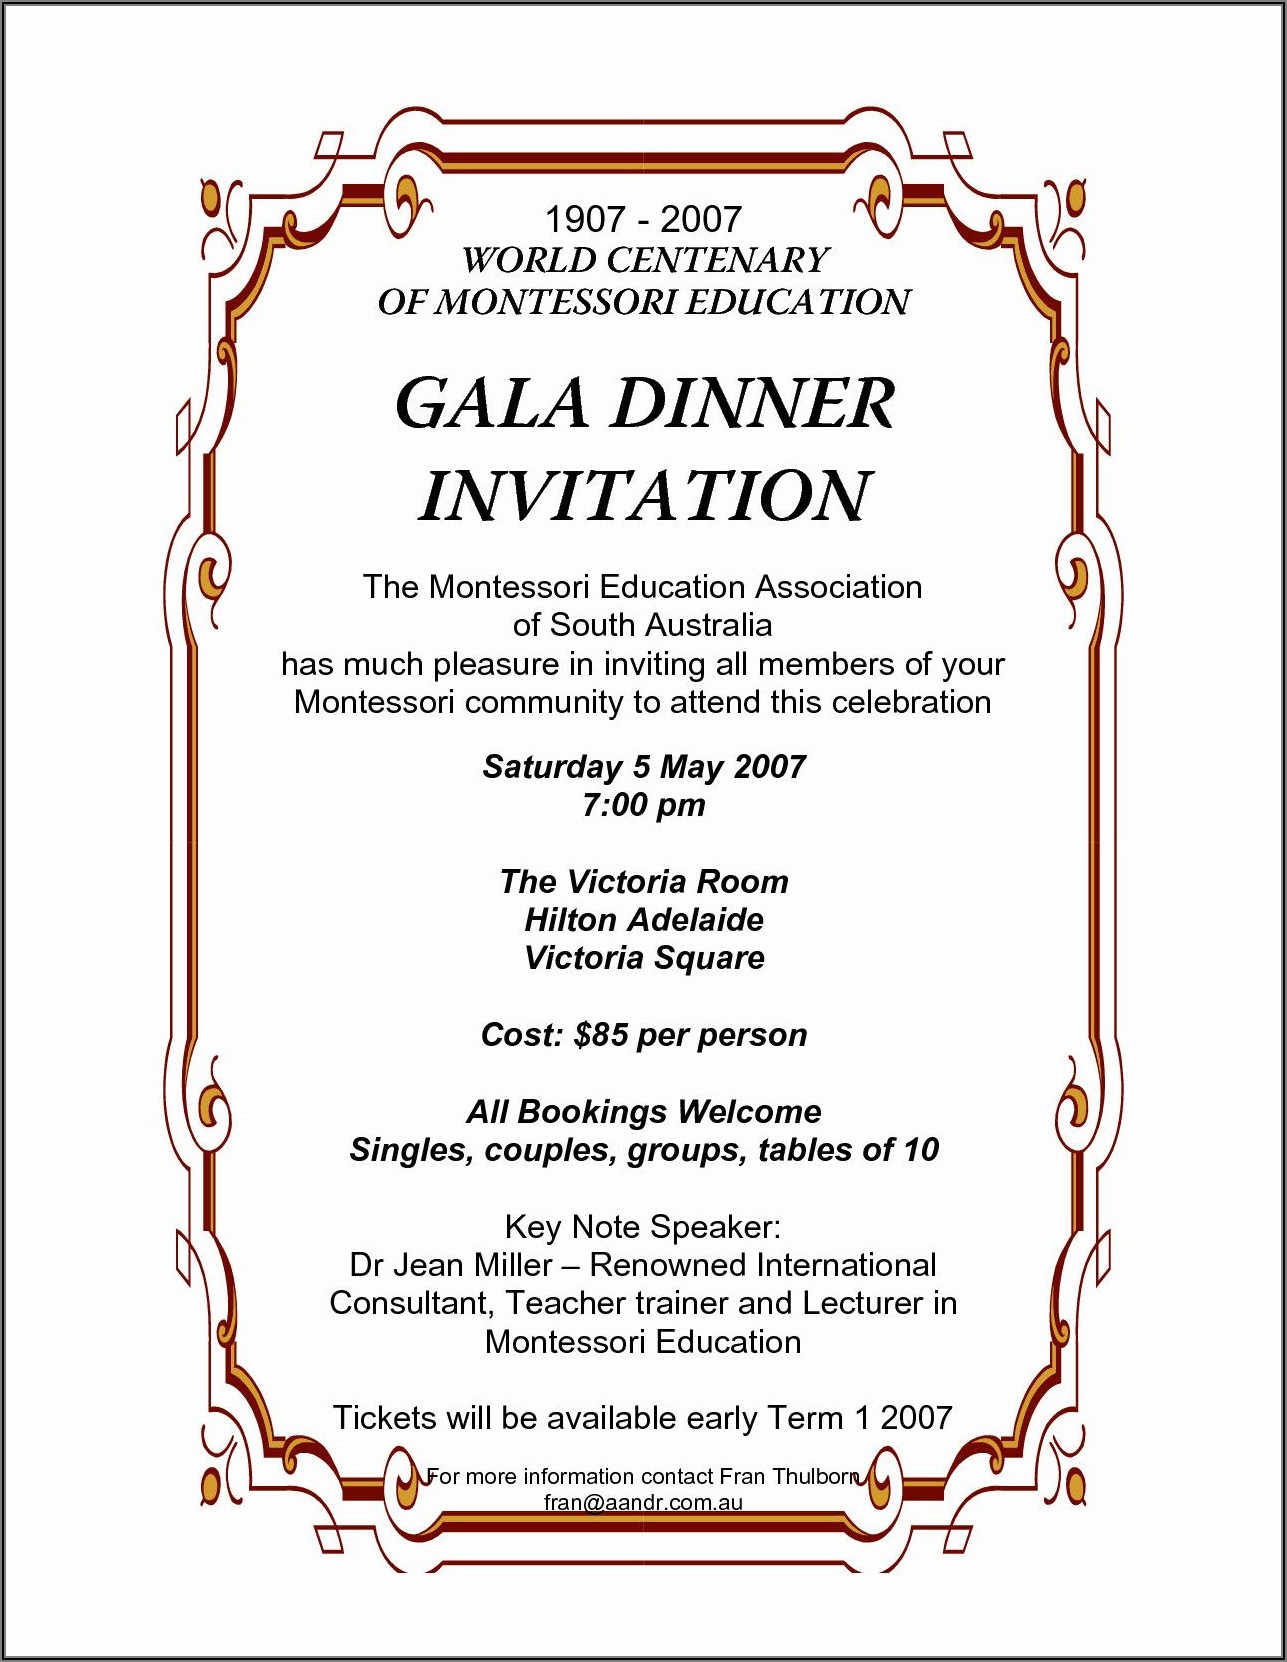 Gala Dinner Invitation Wording